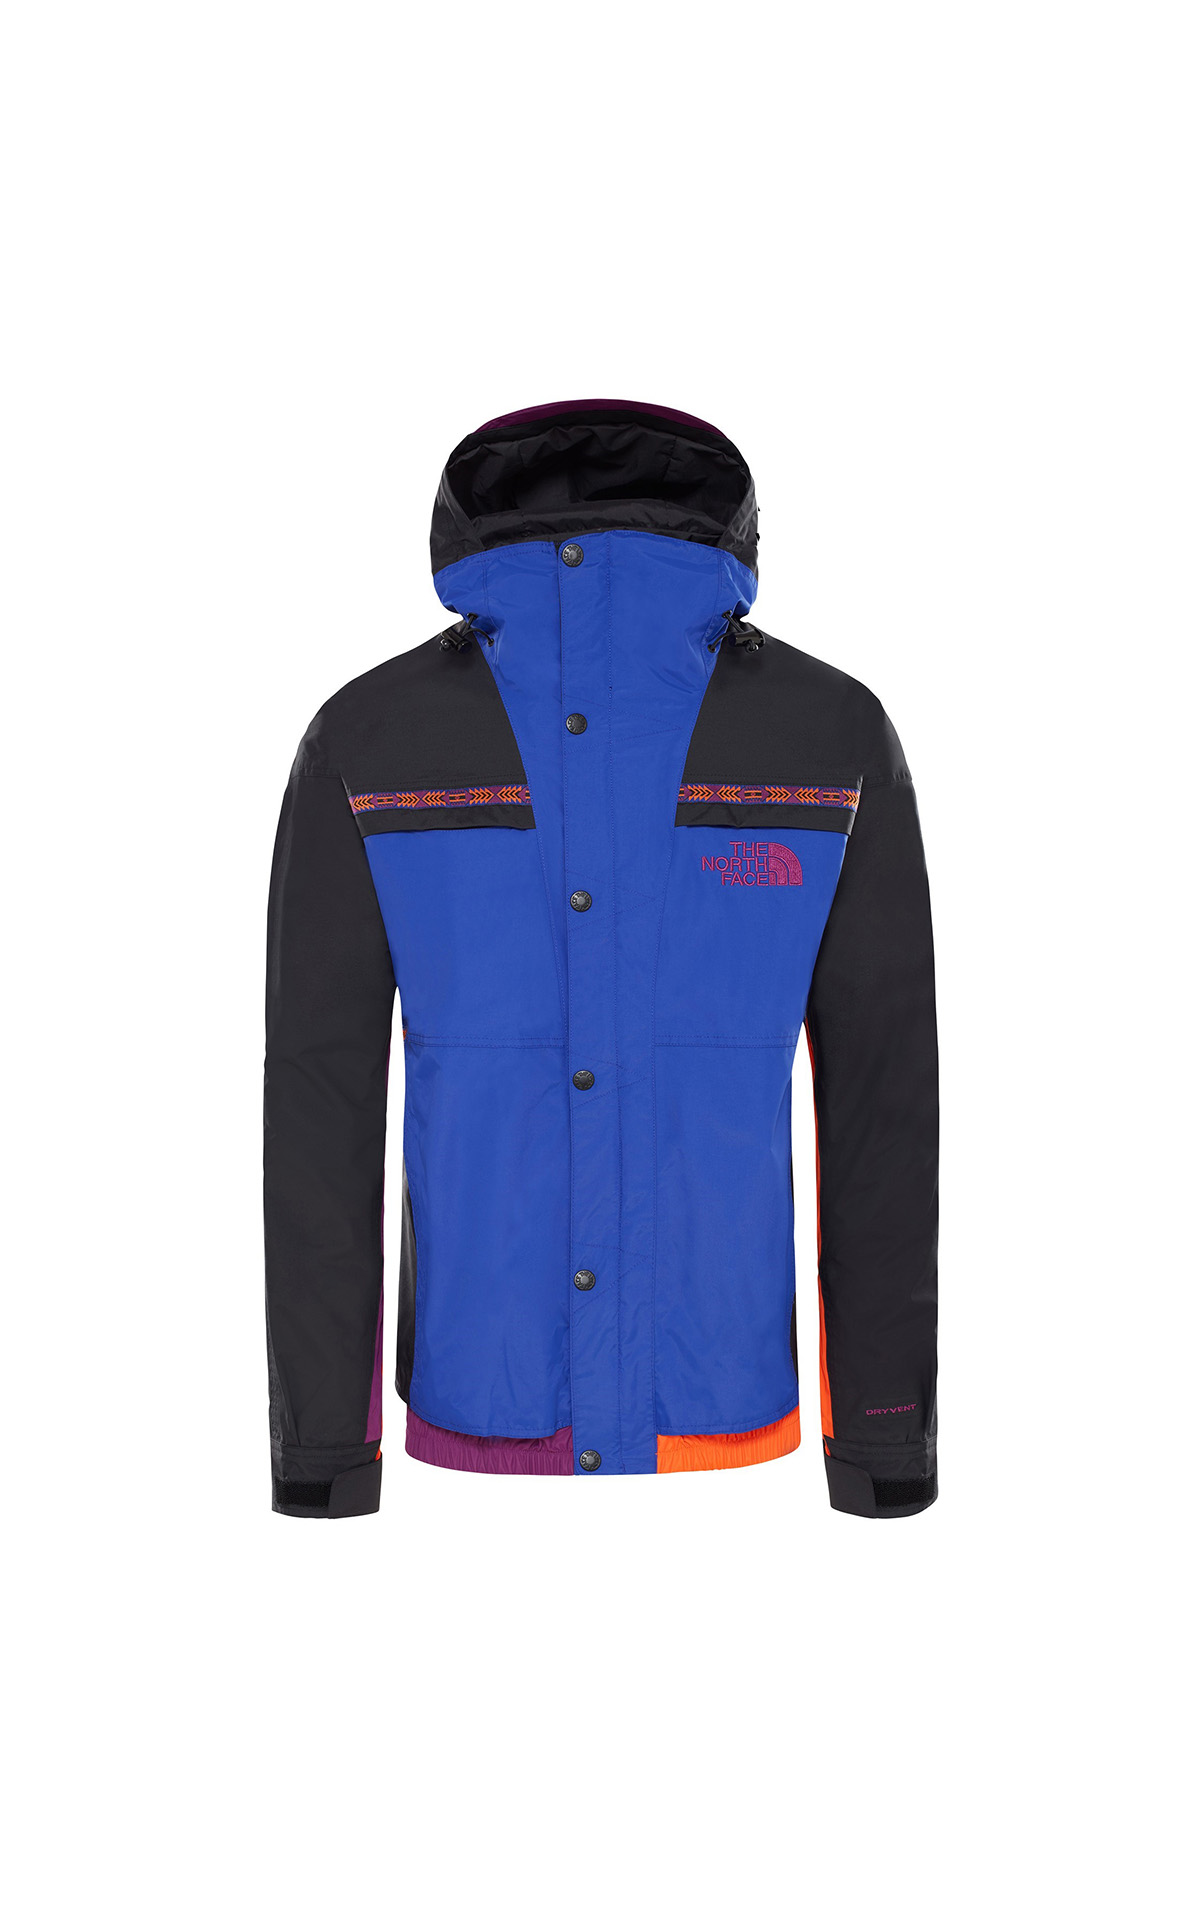 The North Face M 92 retro rage rain jacket from Bicester Village